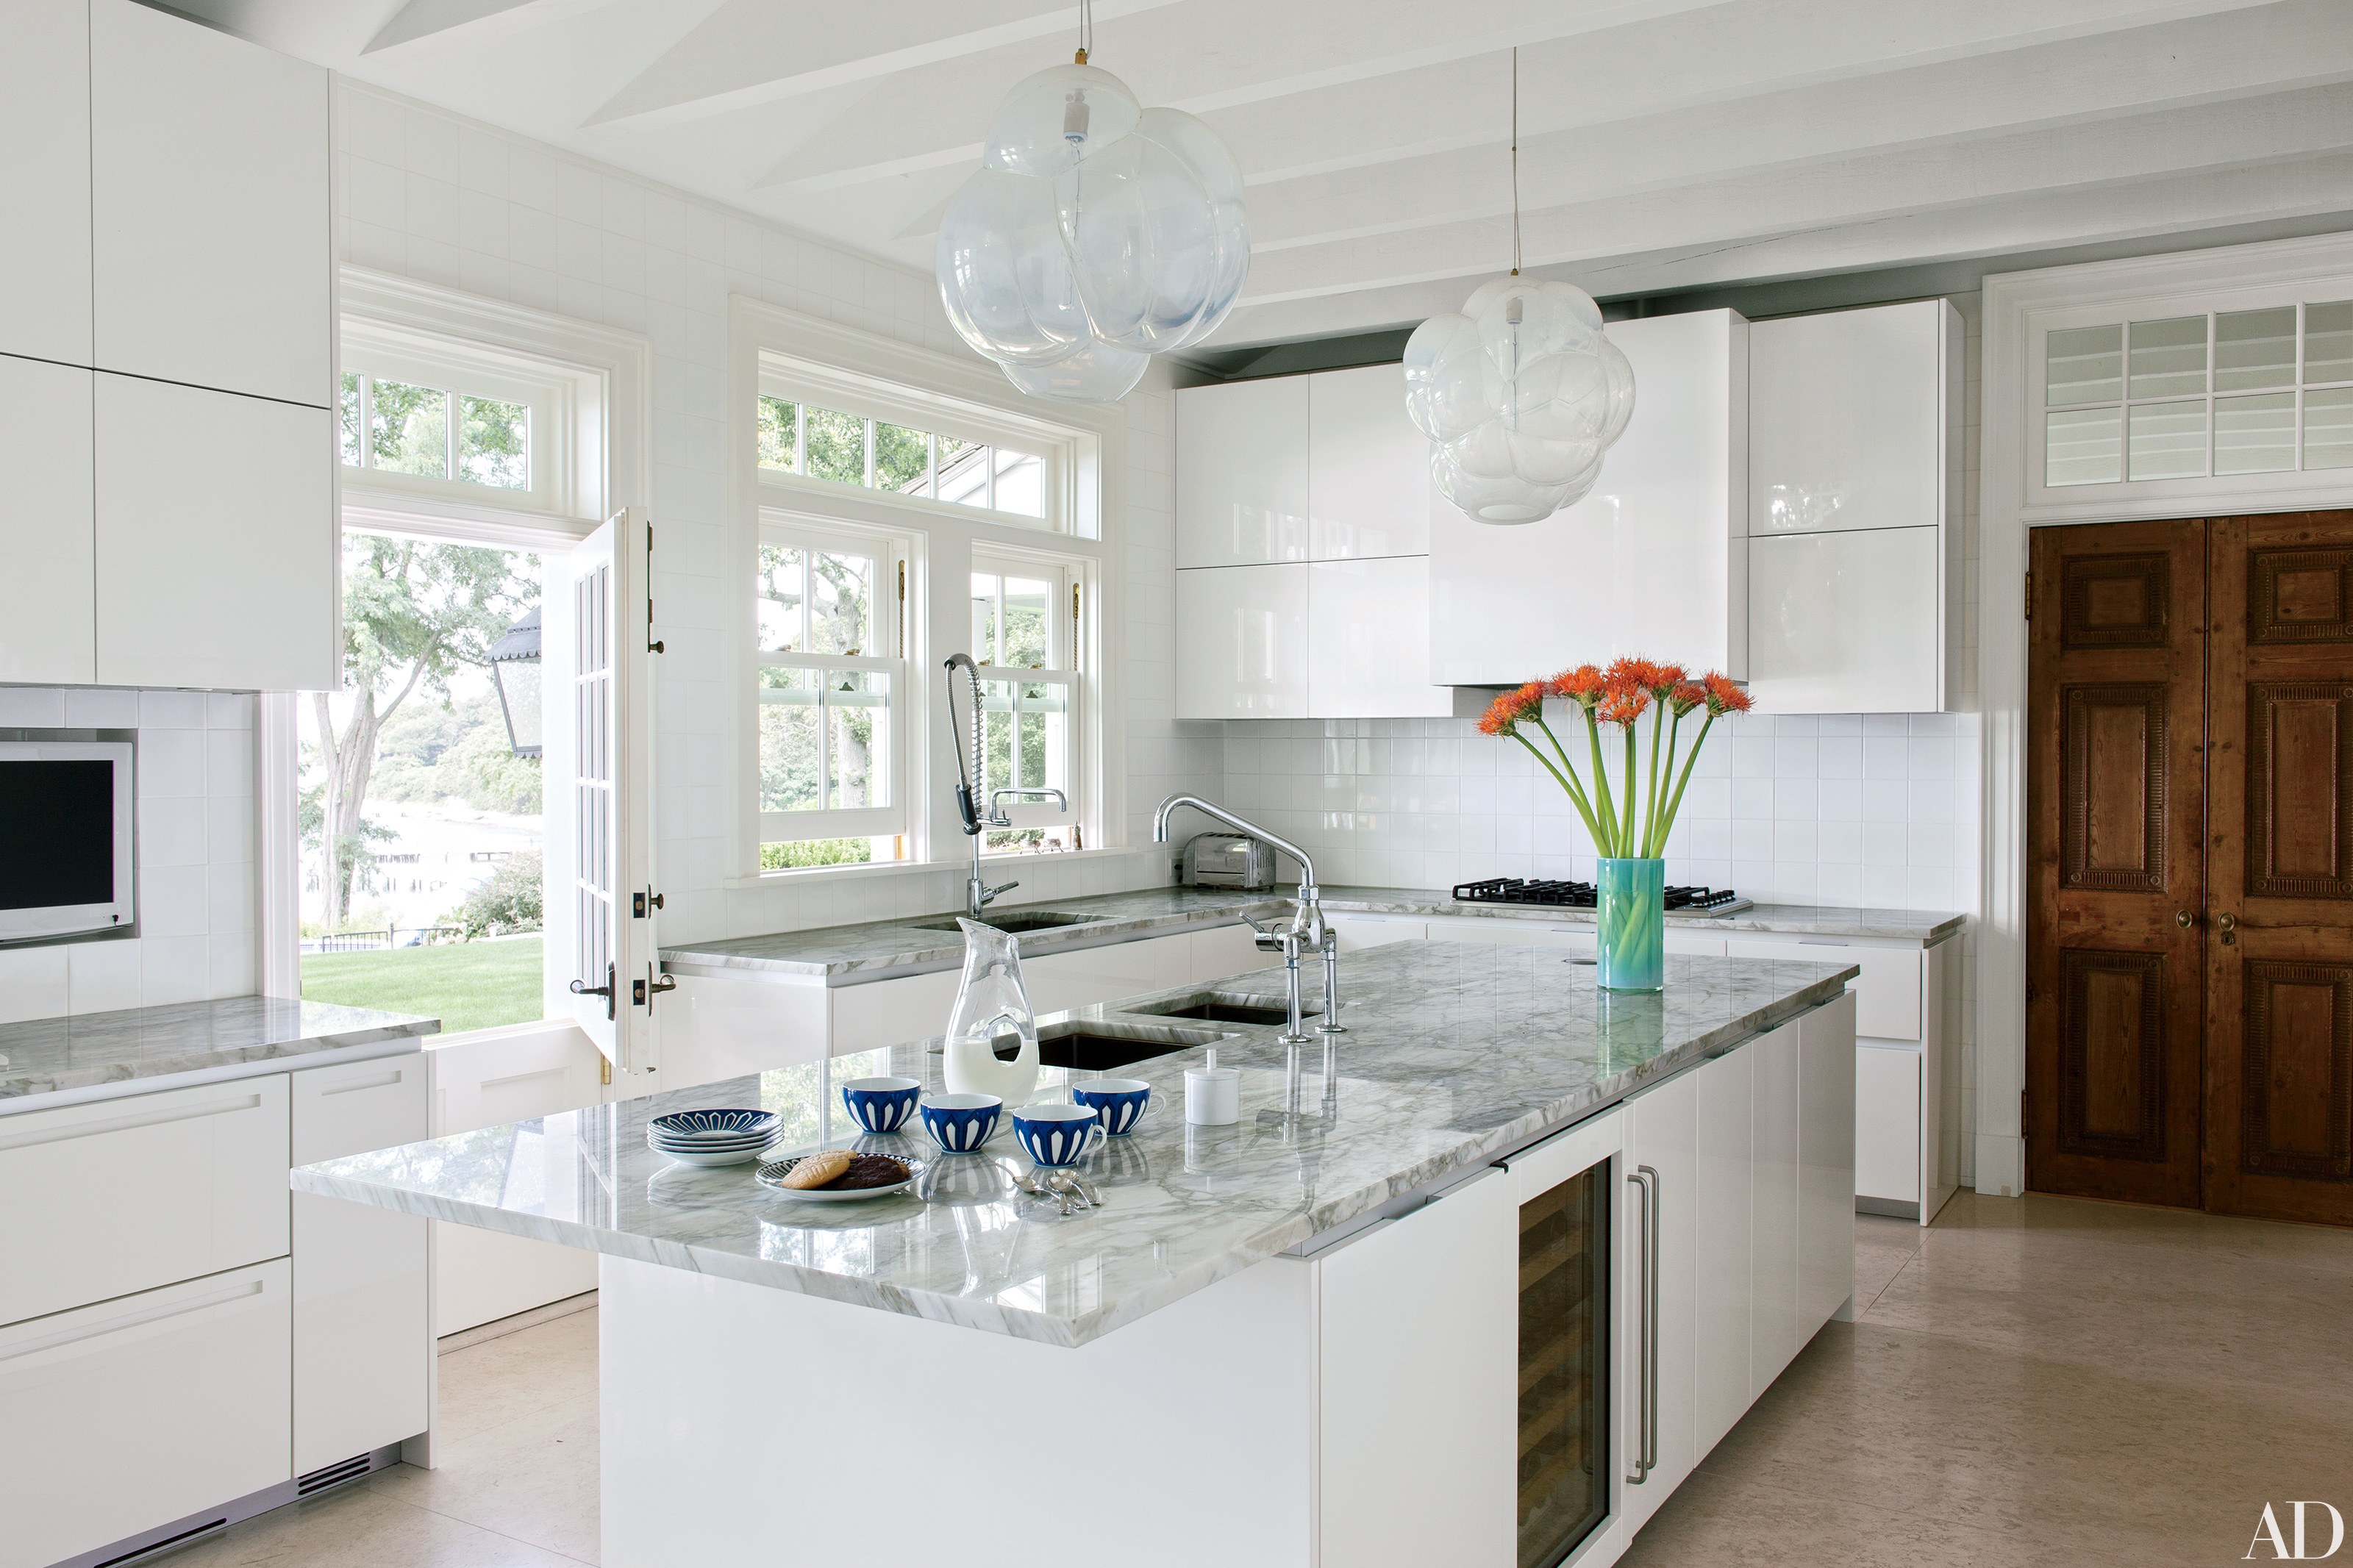 31 Kitchens With Pretty Pendant Lighting | Architectural Digest Within Ariel 2 Light Kitchen Island Dome Pendants (Image 3 of 30)